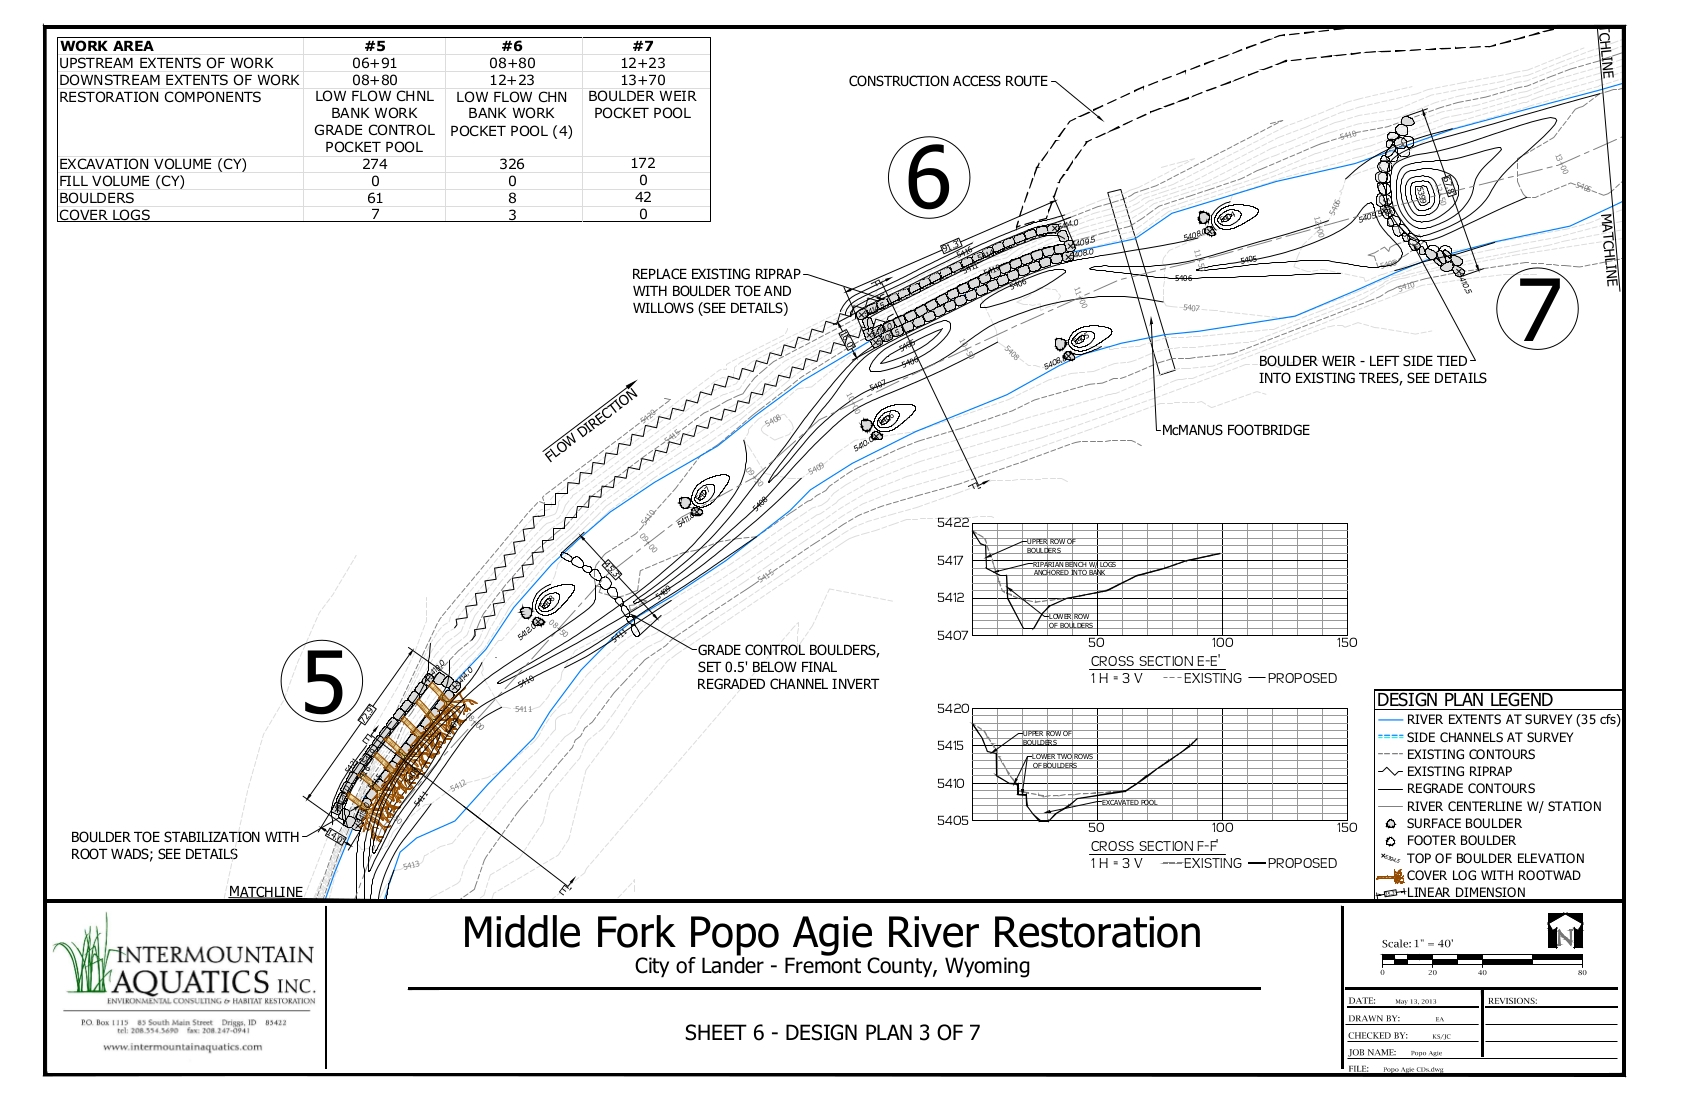 Stream Restoration plan view and cross sections from the Final Design